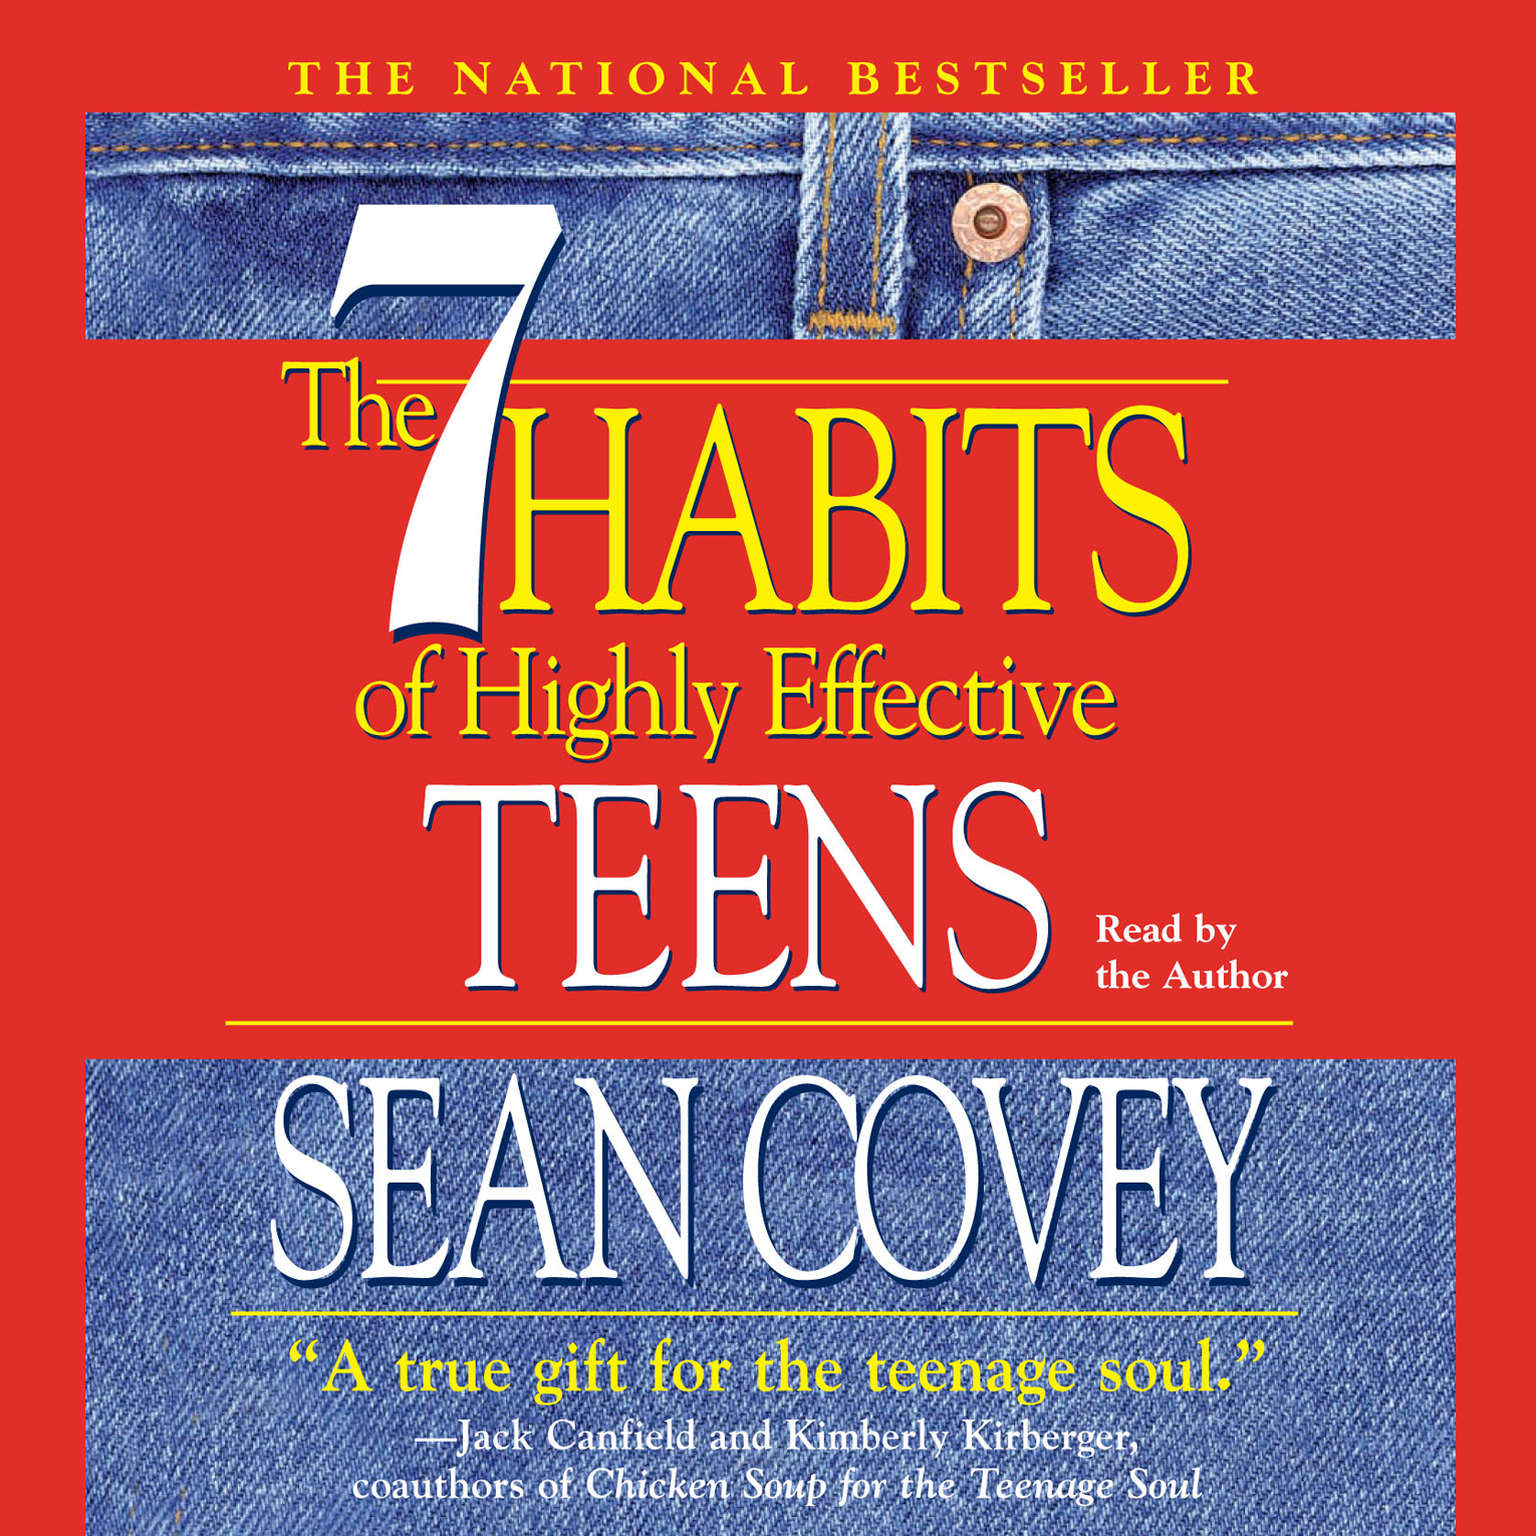 Printable The 7 Habits of Highly Effective Teens: The Ultimate Teenage Success Guide Audiobook Cover Art